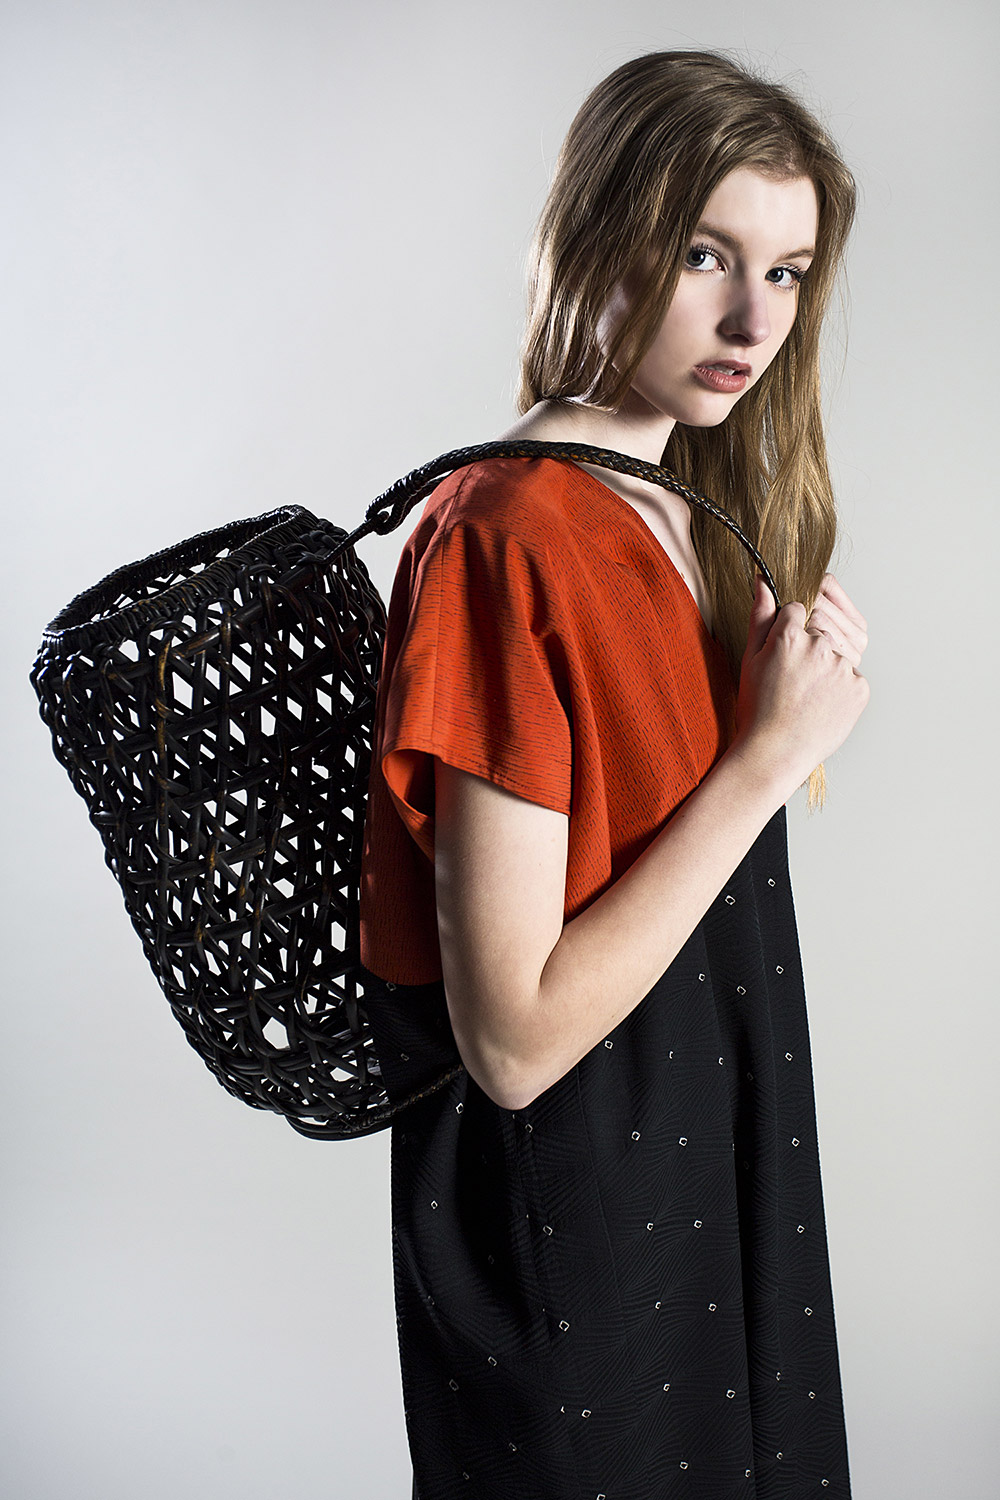 Outfit-13-plus-backpack-4356.jpg